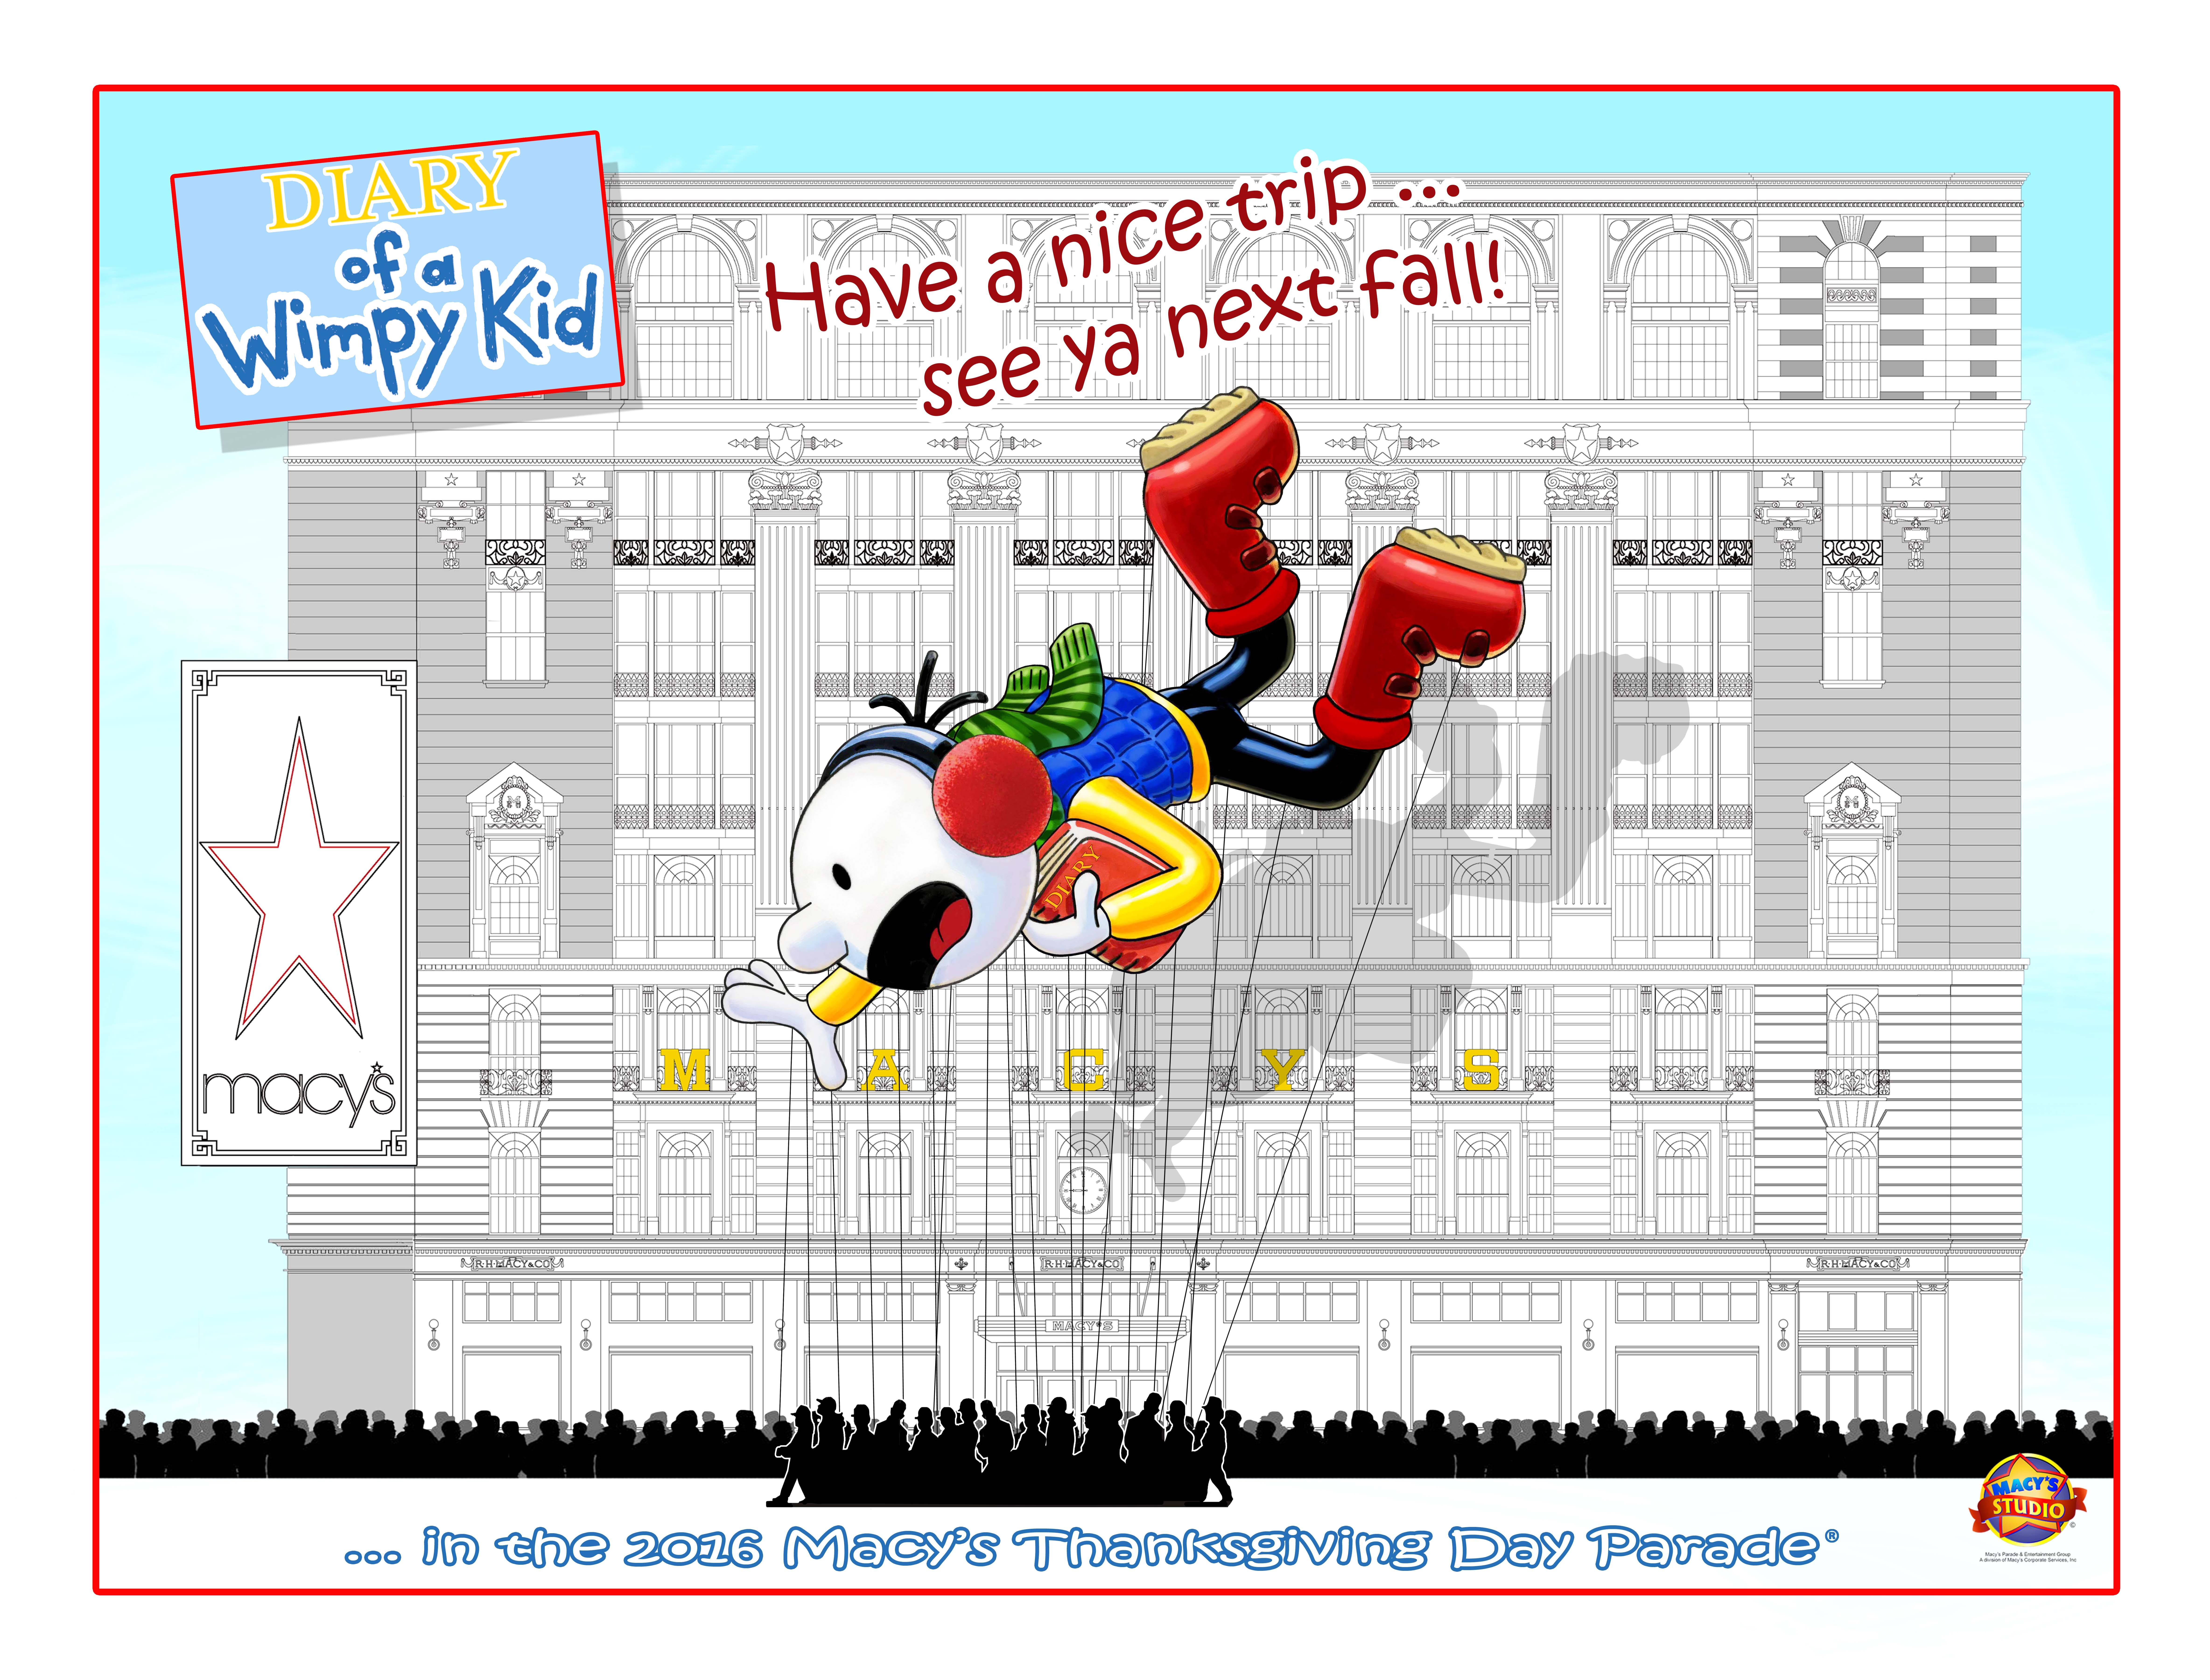 Diary_of_a_Wimpy_Kid_2016_Macy%27s_Thanksgiving_Day_Parade_balloon_FINAL greg heffley, star of the diary of a wimpy kid® book series, is